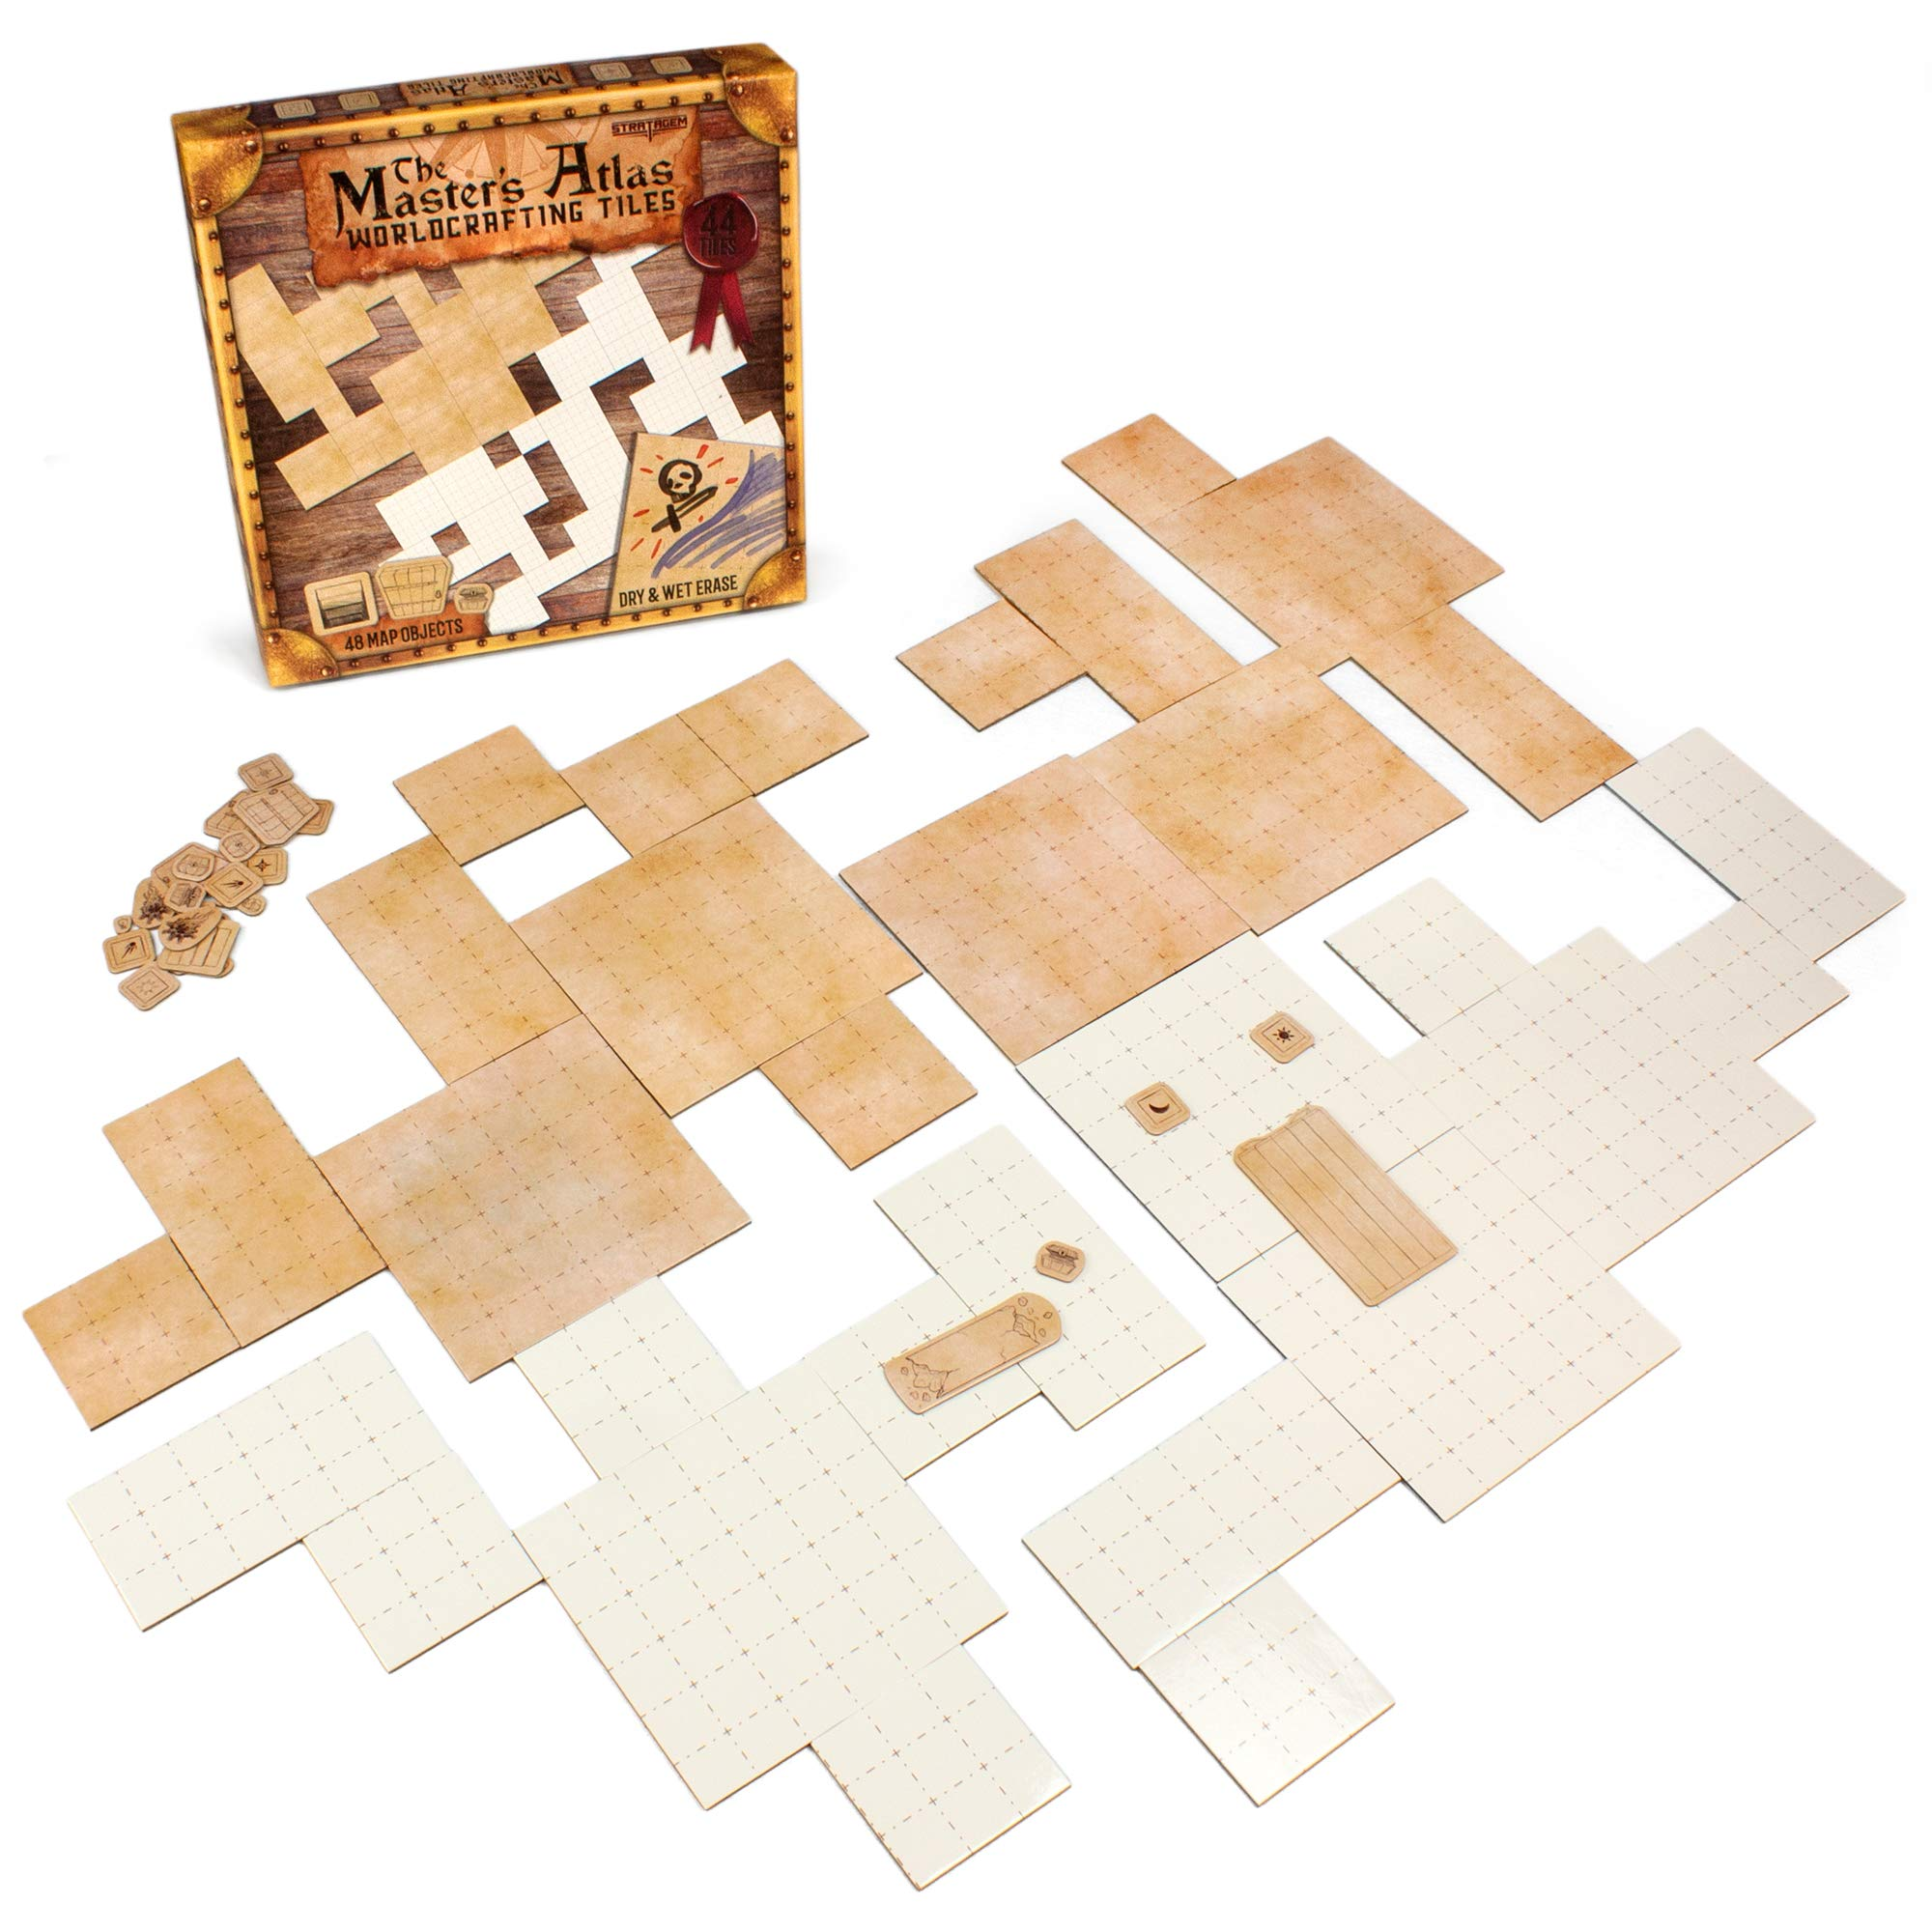 Dungeon Master Essentials: Roleplaying Starter Kit | Customizable GM Screen, 44 Reversible Map Tiles, 5 Character Health Trackers, 5 Polyhedral Dice Sets | Tabletop Fantasy Game Beginner Accessories by Stratagem (Image #3)